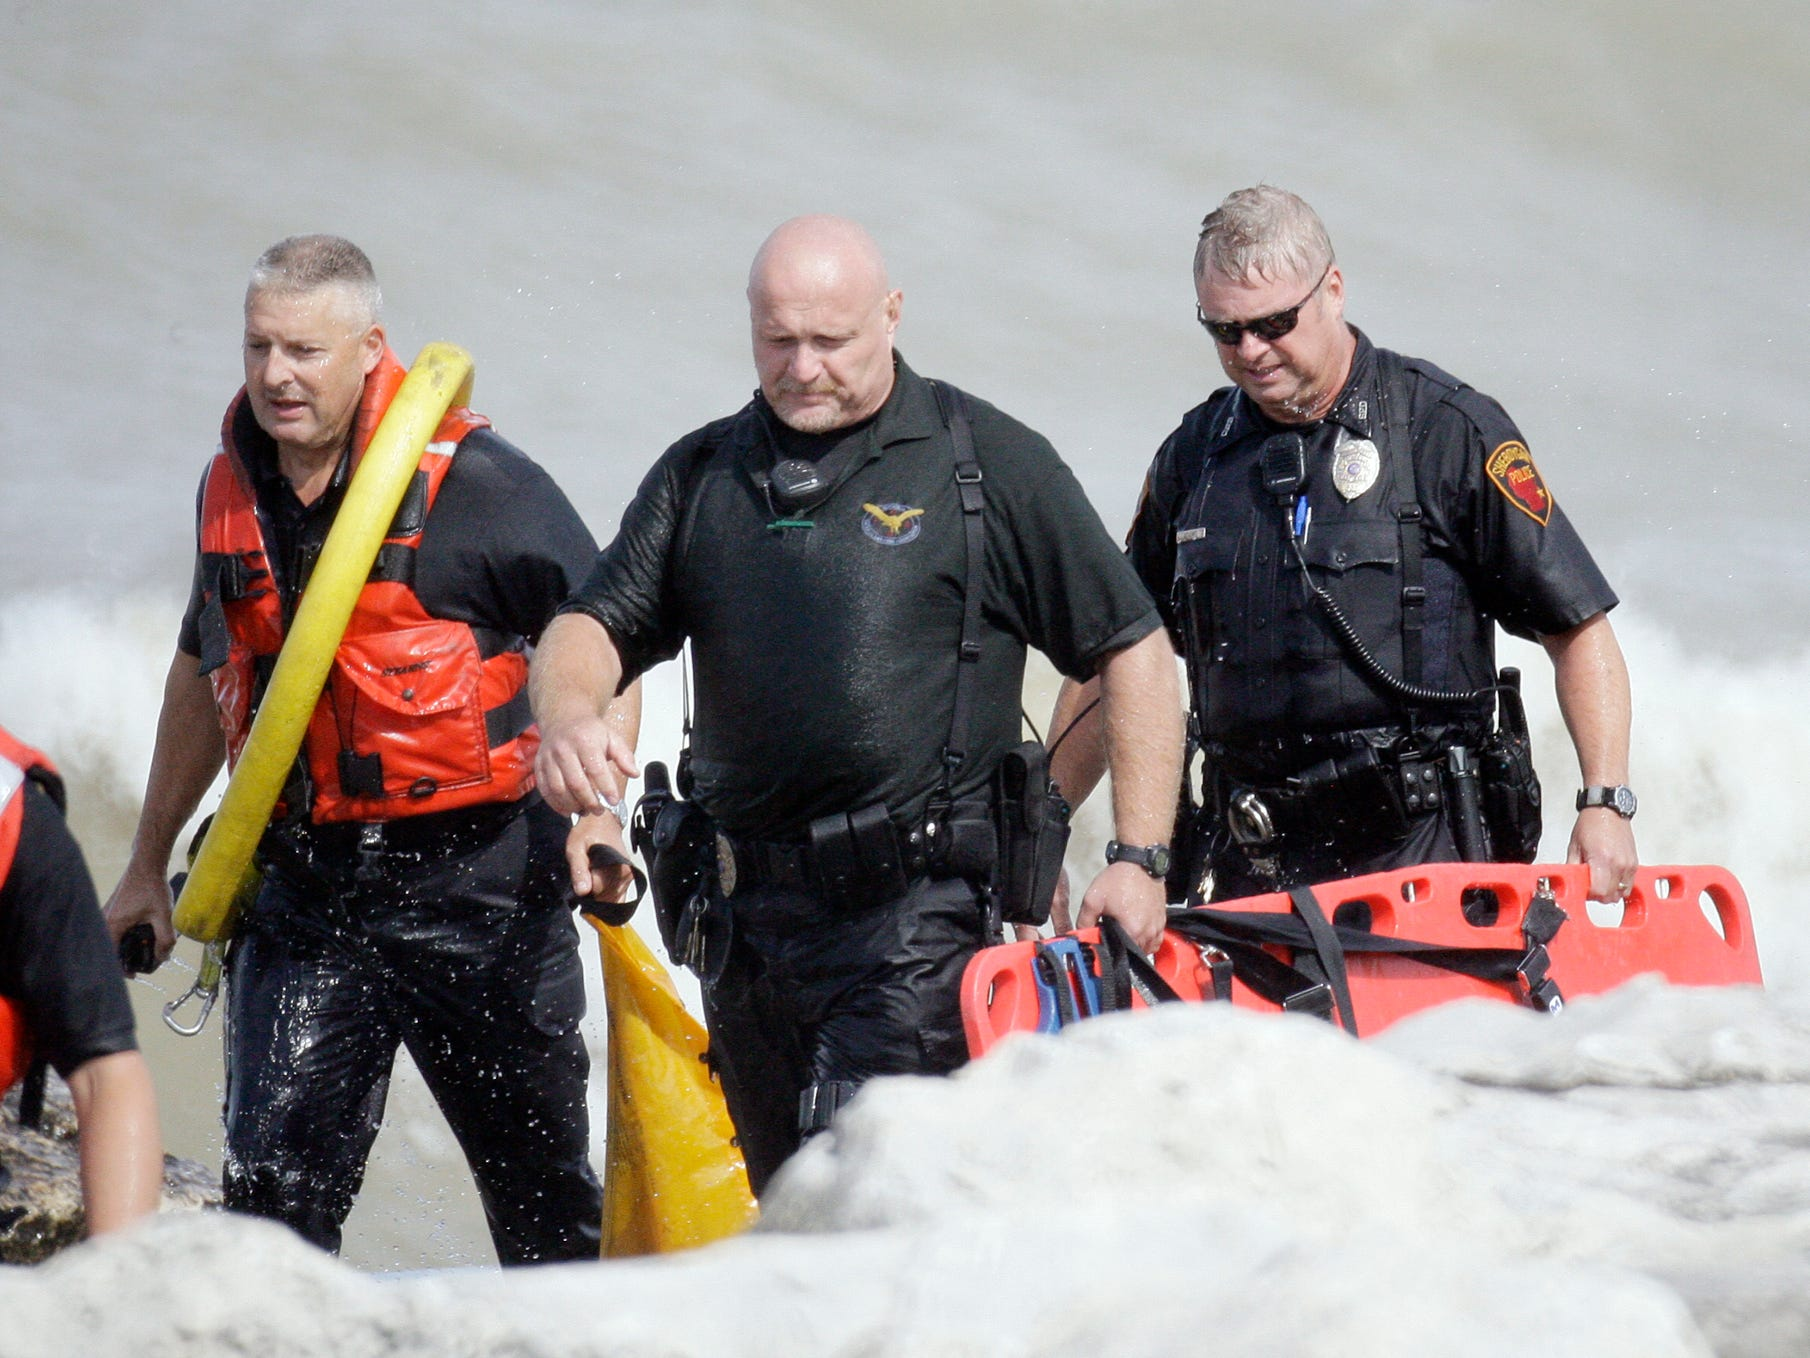 Sheboygan police walk back from search operations at North Pier on Aug. 10, 2012, in Sheboygan, WIs.  FILE PHOTO